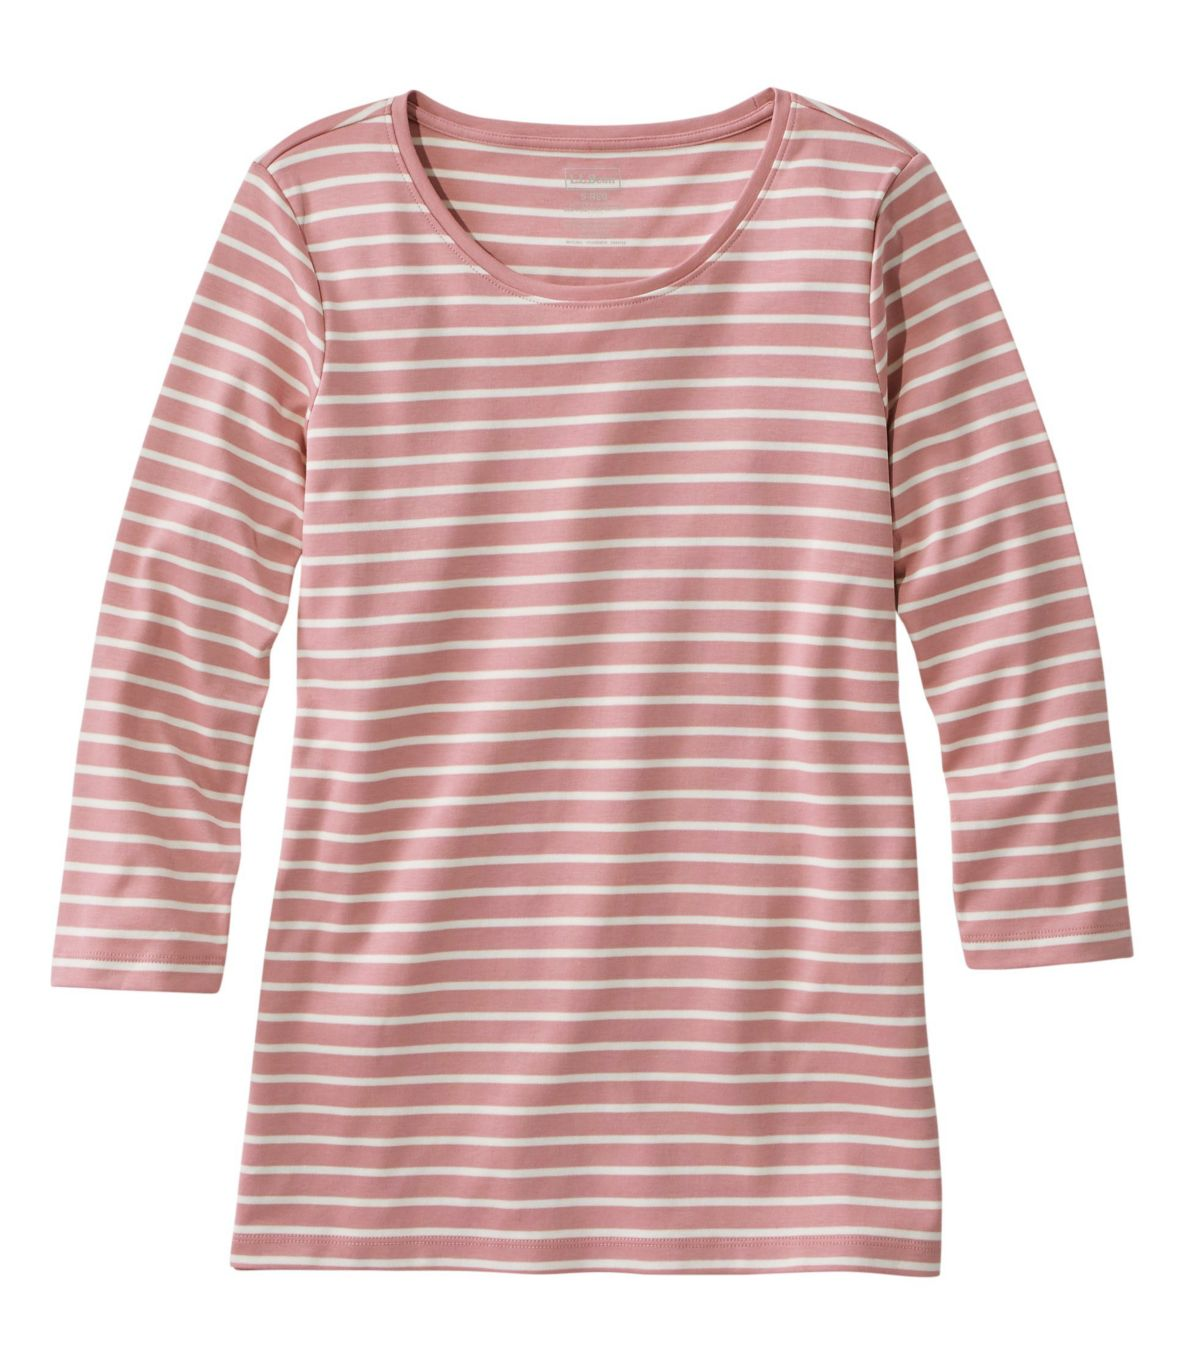 Women's Pima Cotton Shaped Tee, Three-Quarter-Sleeve Jewelneck Stripe